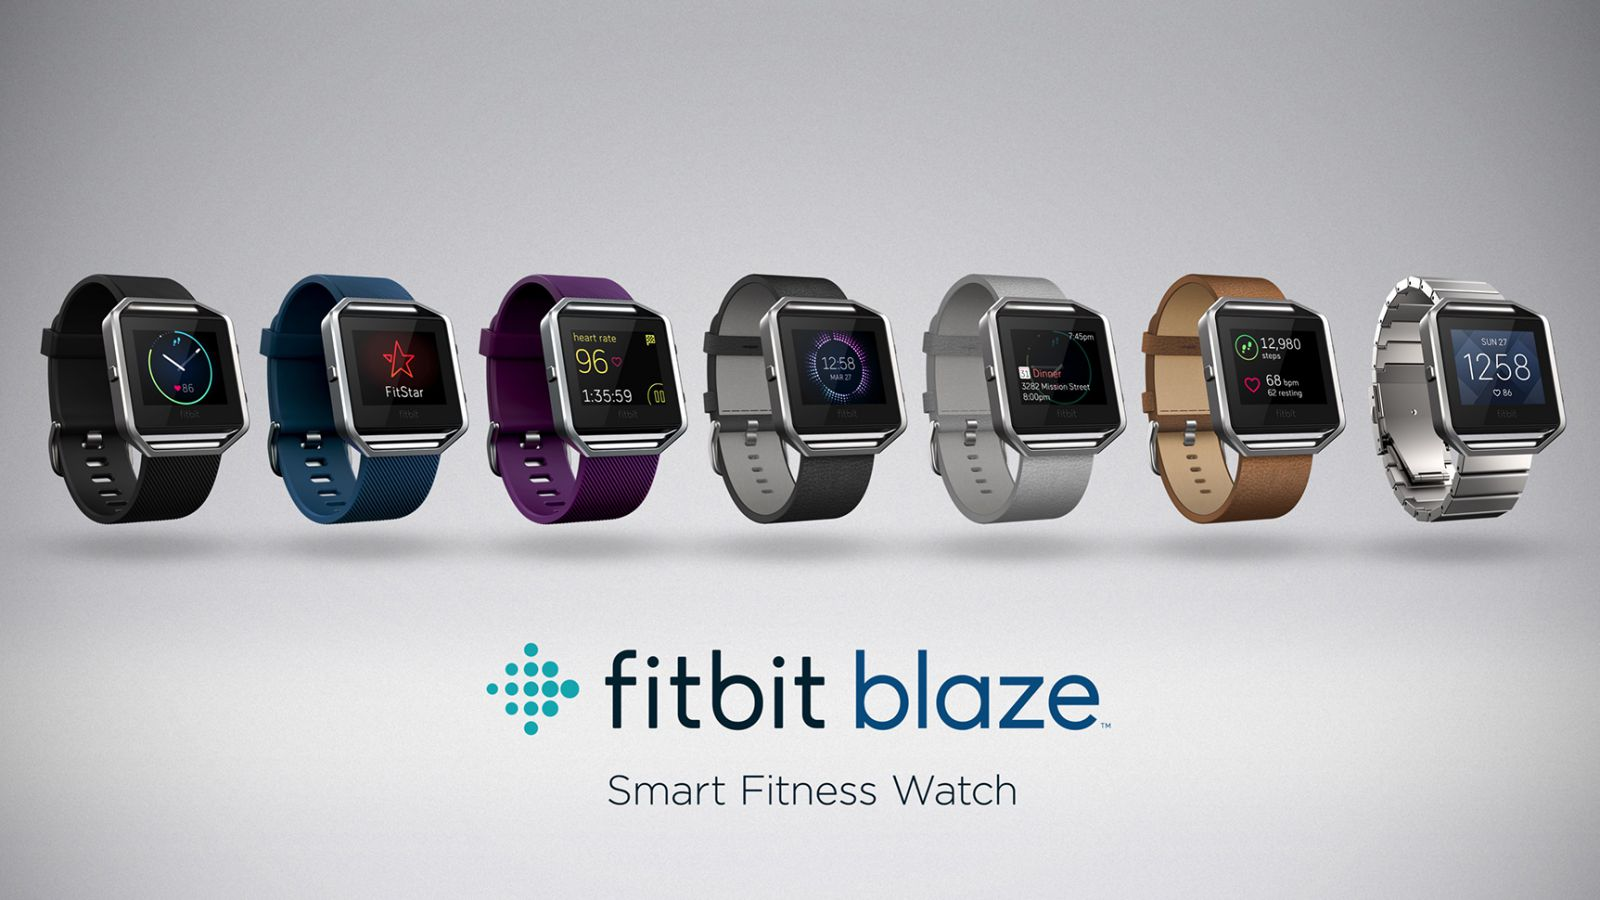 Fitbit Blaze product lineup